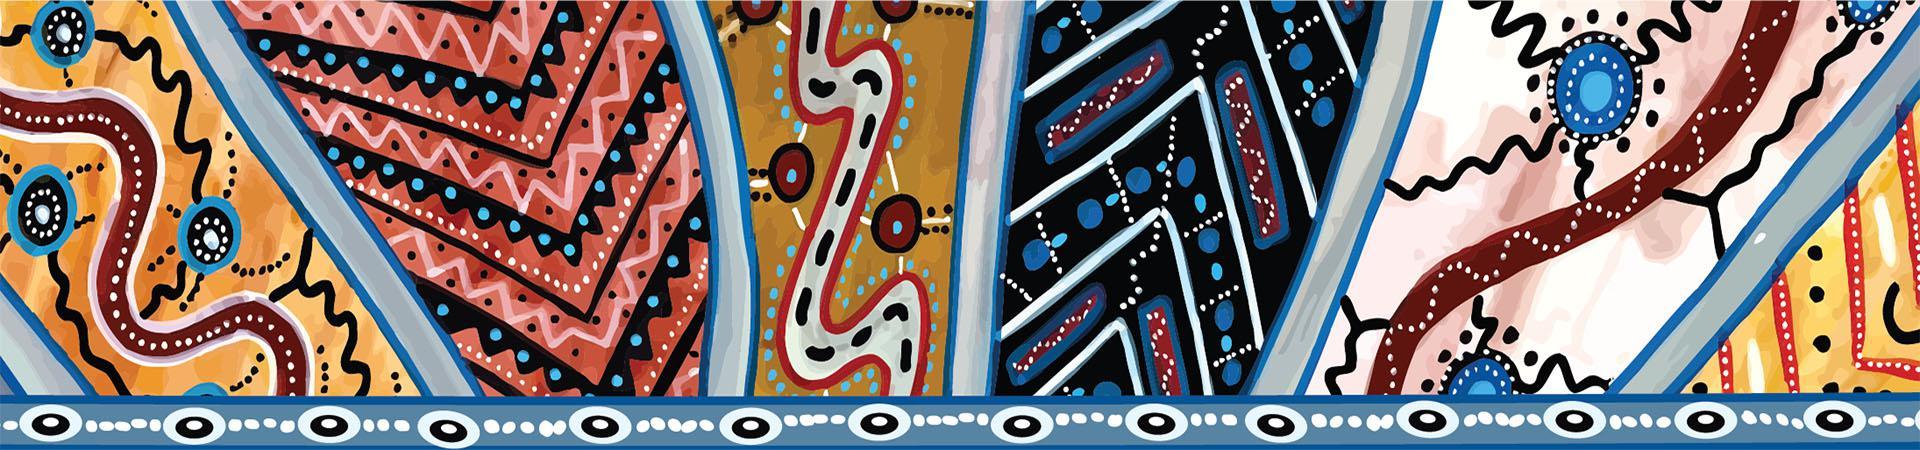 Aboriginal artwork by Cecily Carpenter-Wellington